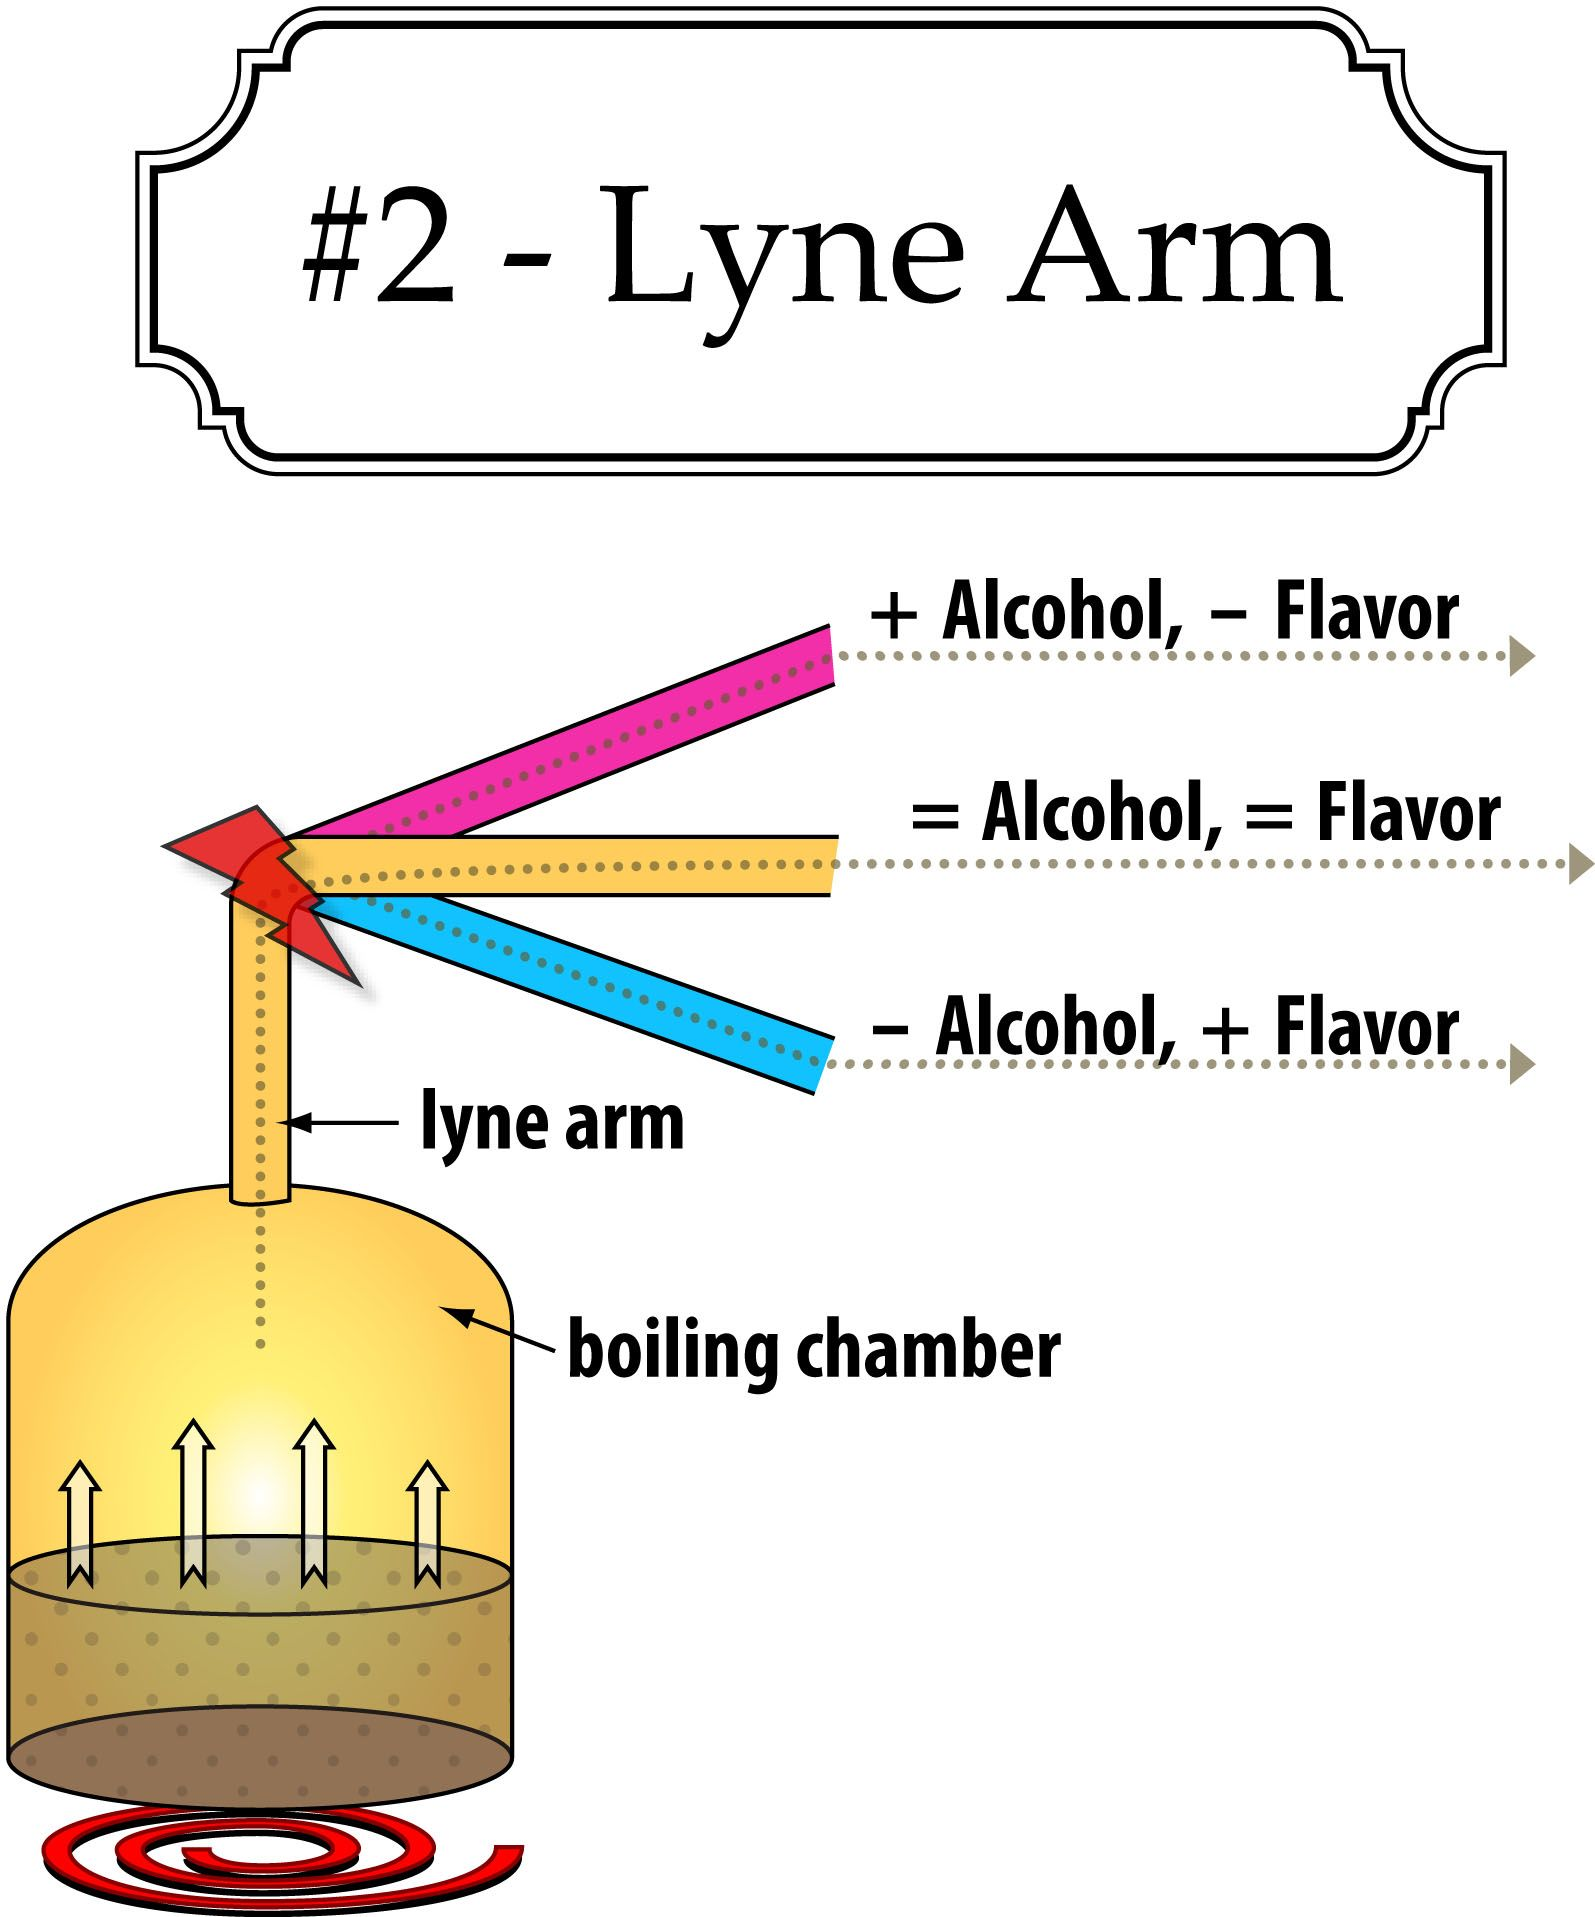 How the lyne arm works on a moonshine still